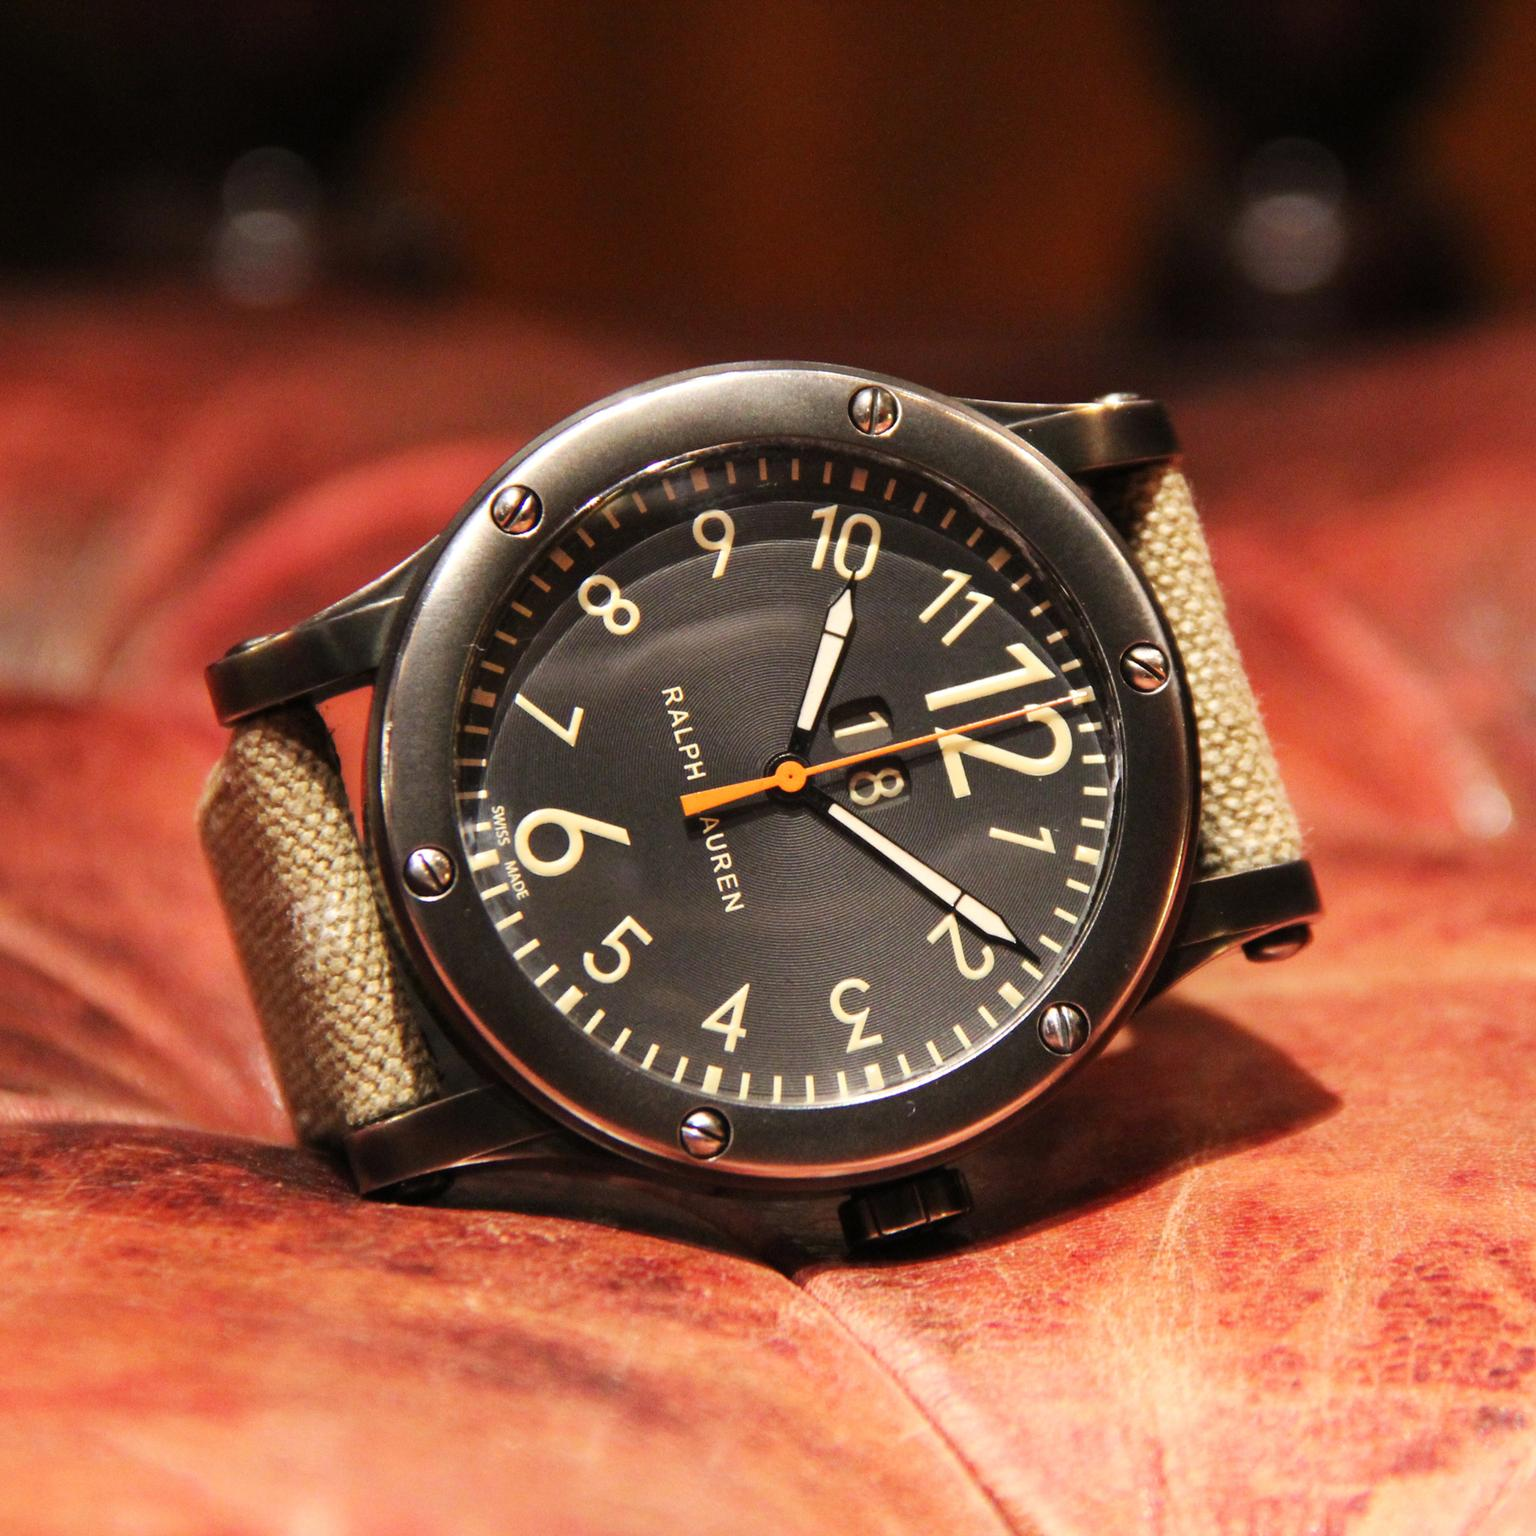 Ralph Lauren RL67 Grand Date watch black dial